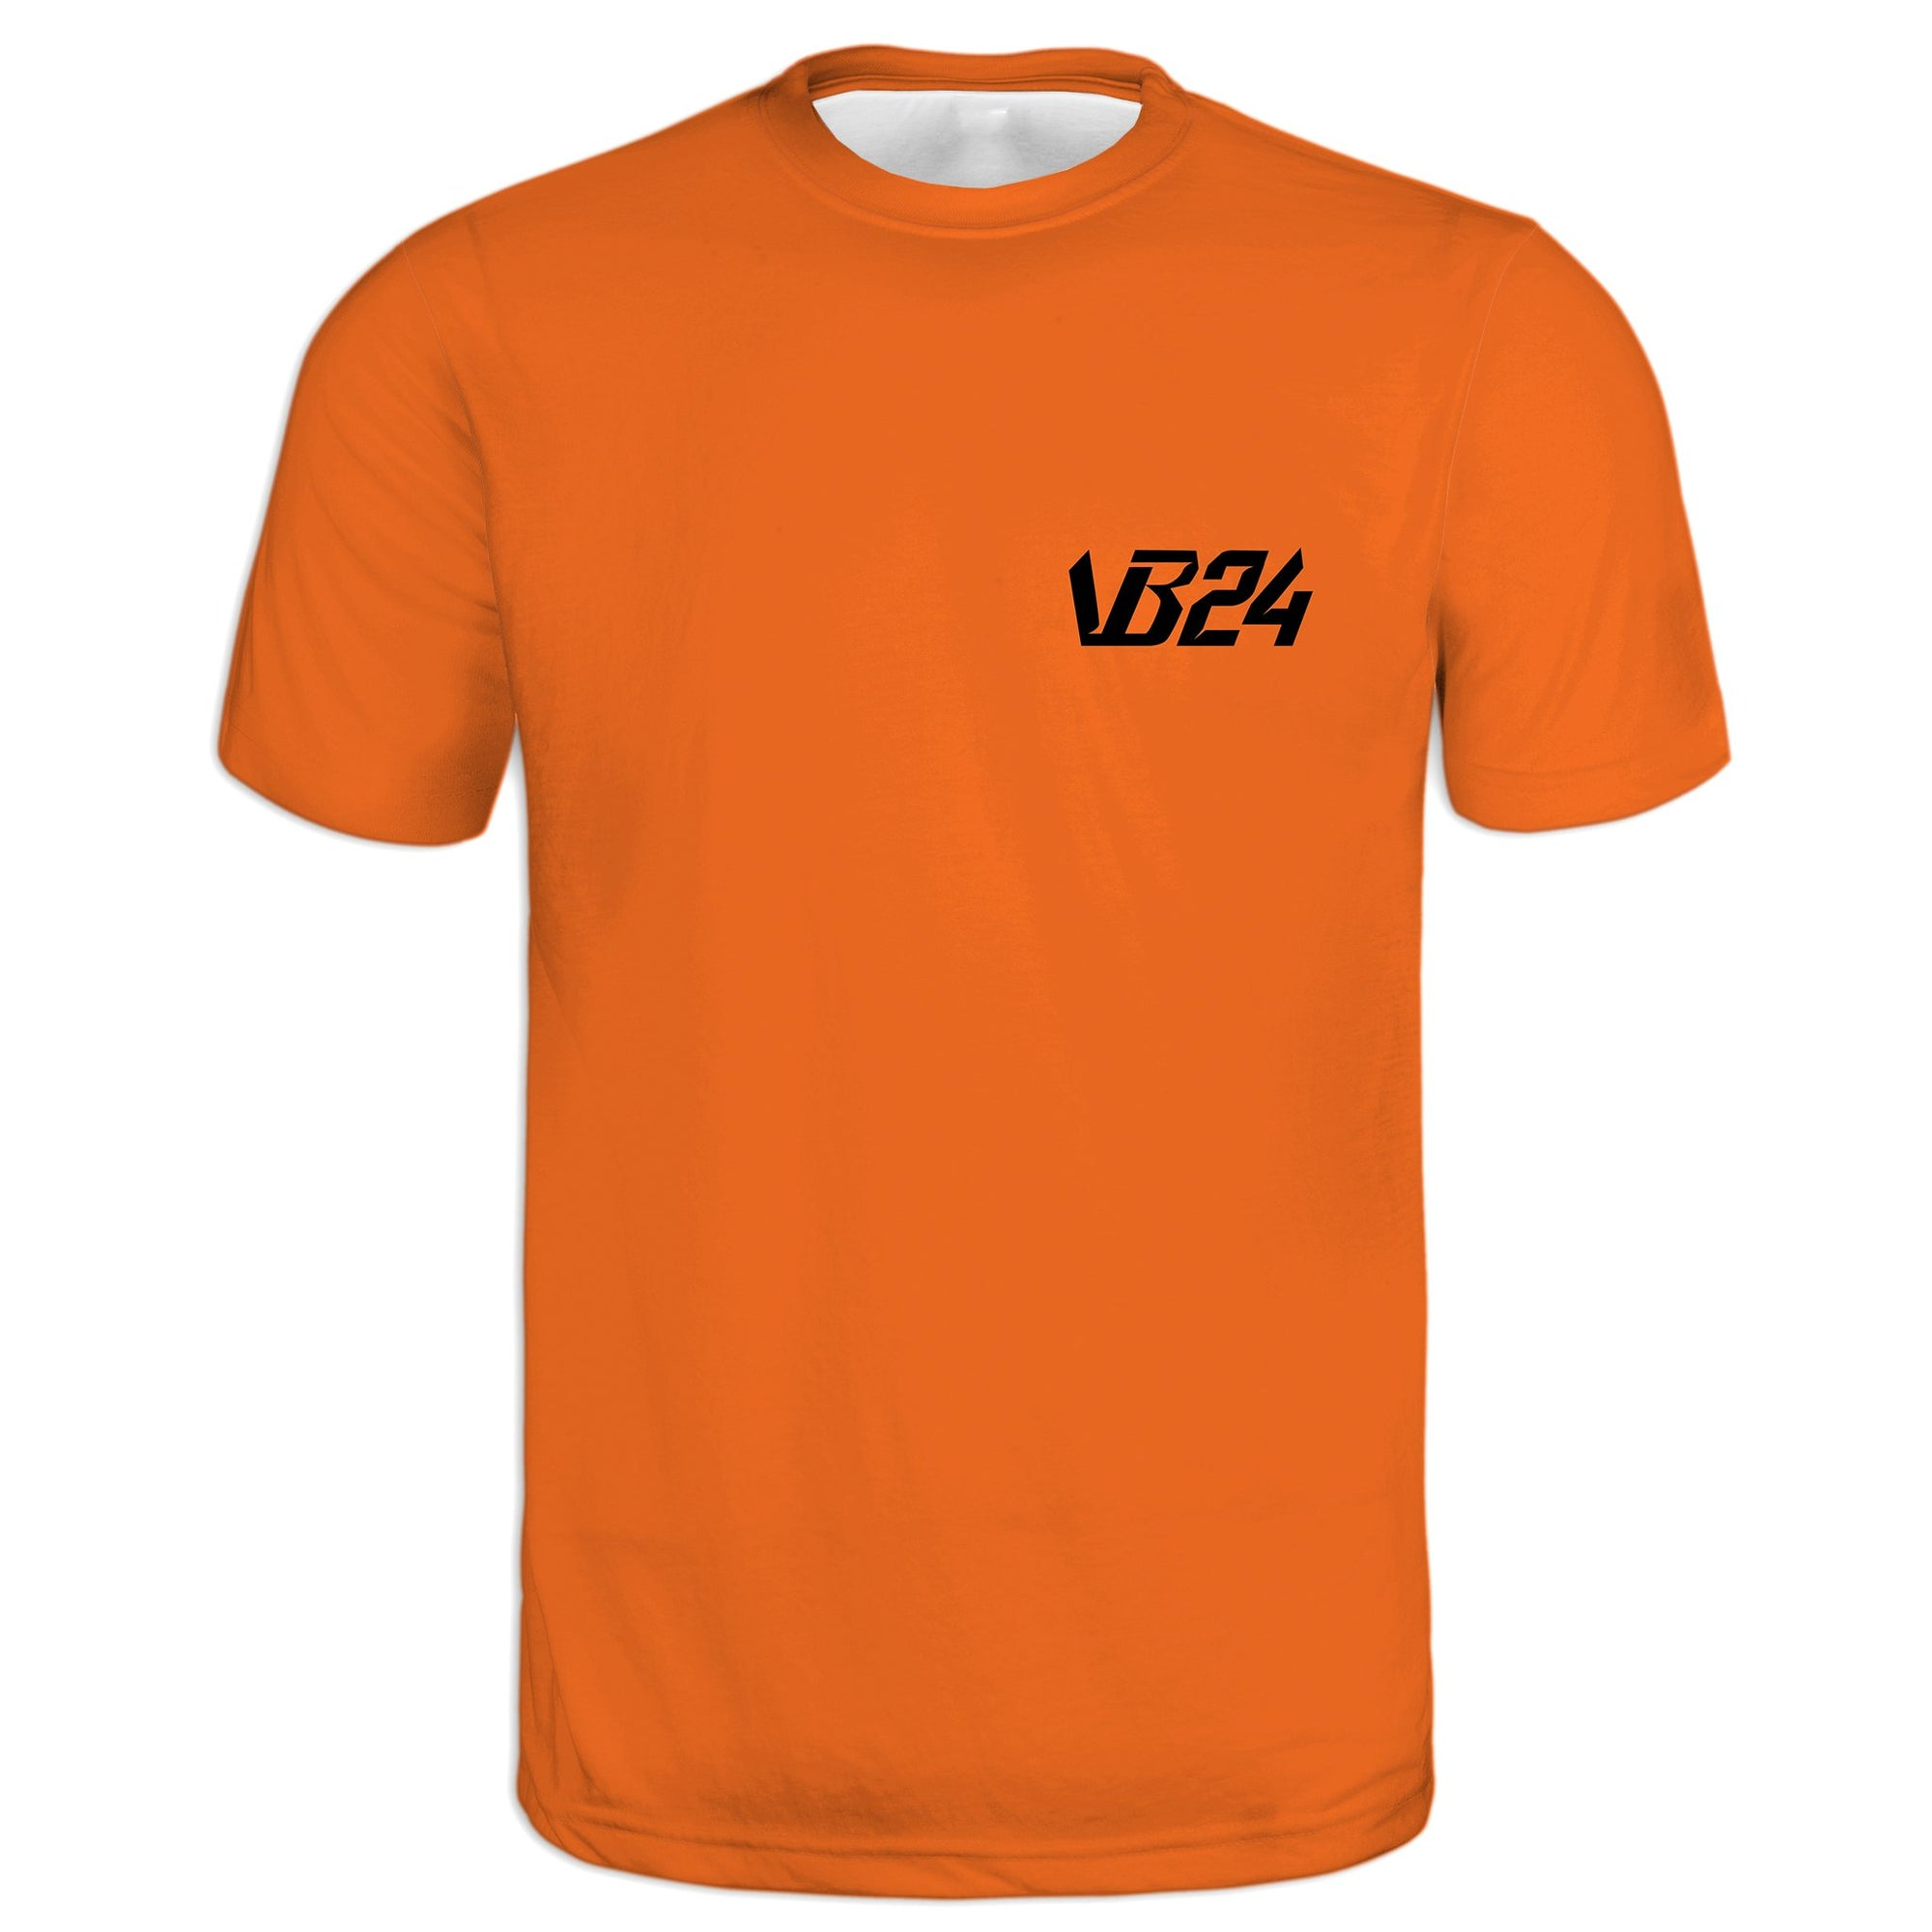 Twenty Four - Orange Tee | vonbellshop.com